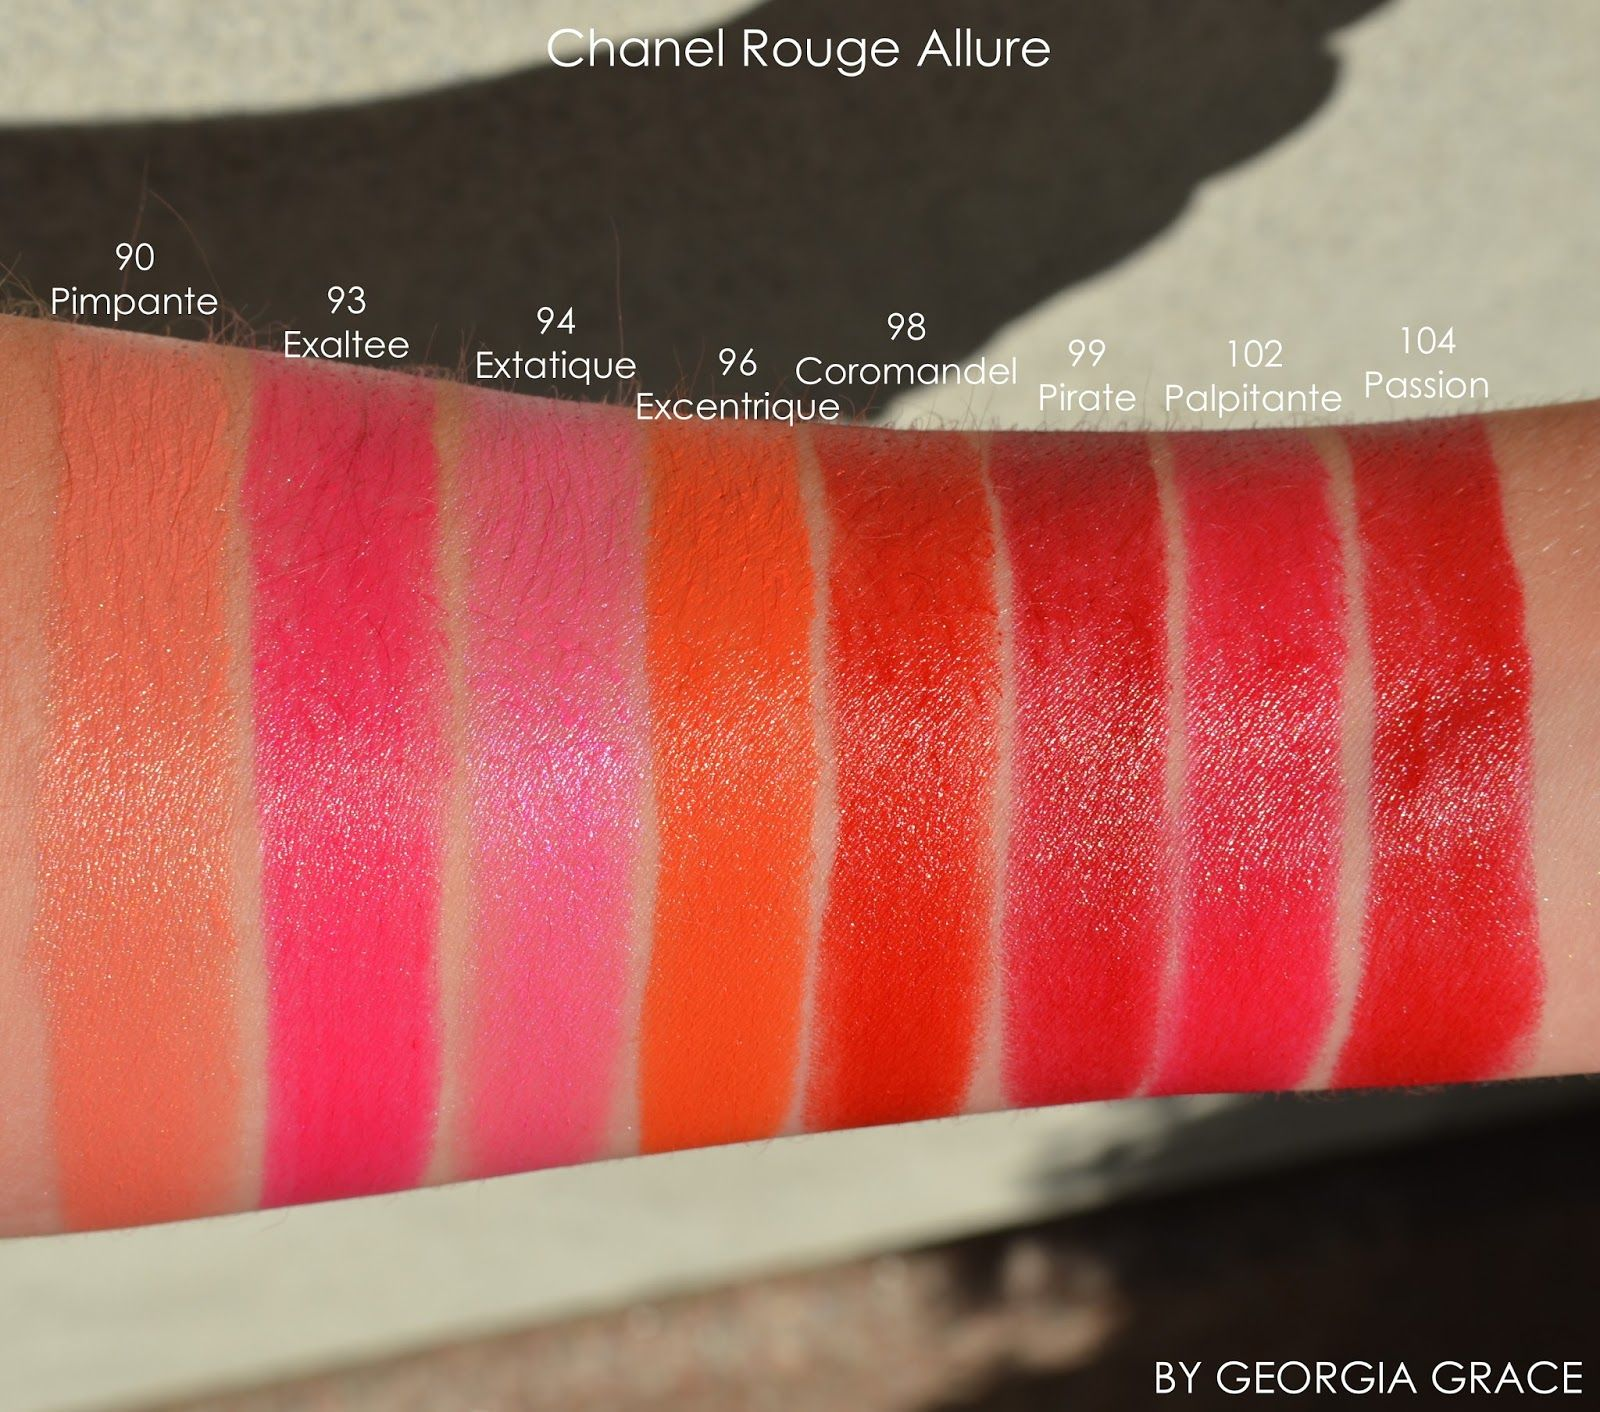 Chanel Rouge Allure Swatches All Shades Makeup Pinterest